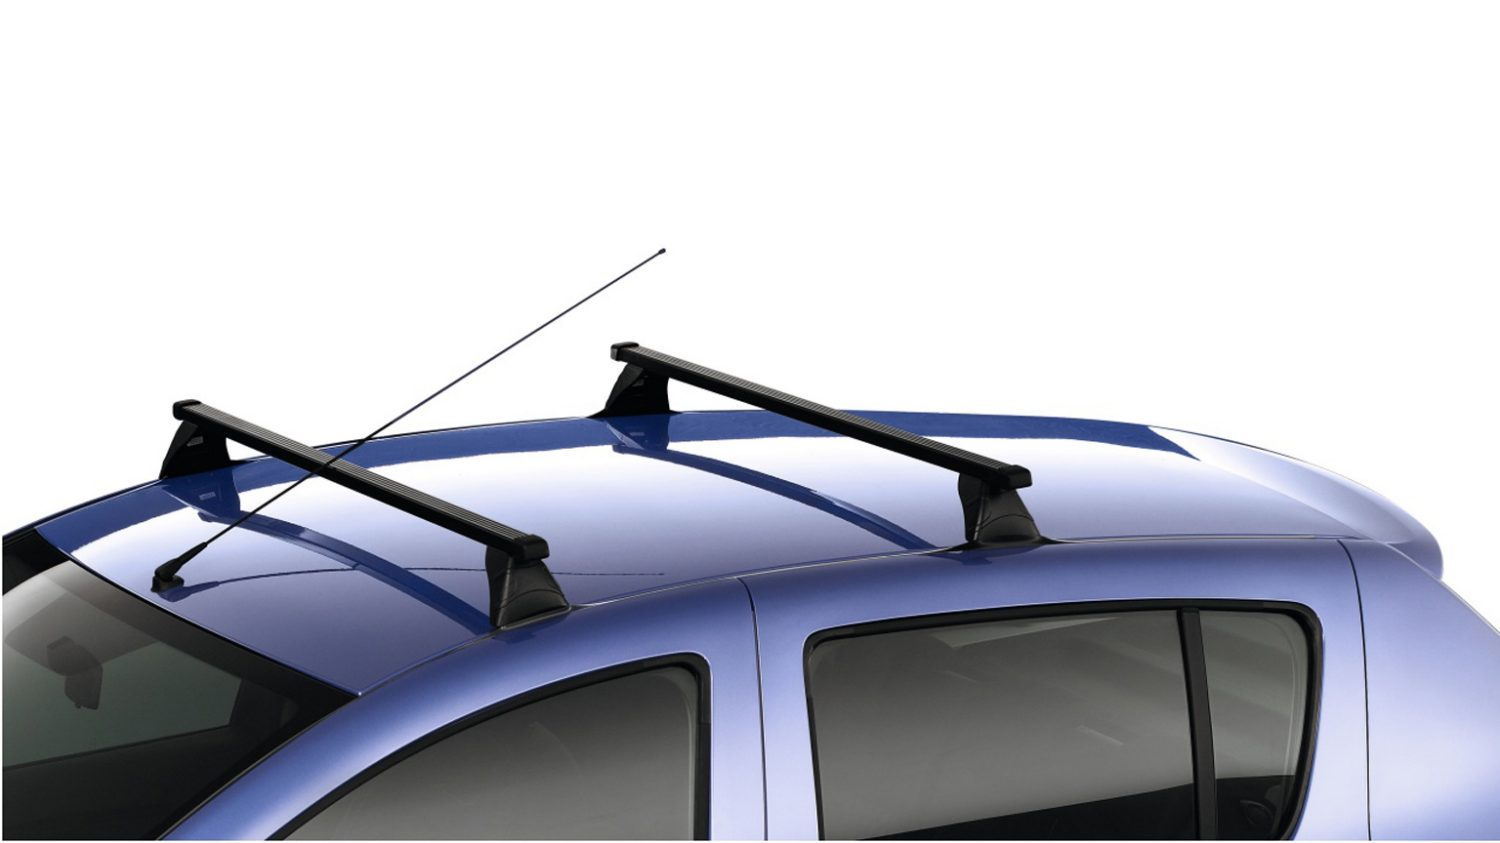 Sandero-roof-bars.jpg.ximg.l_full_m.smart.jpg